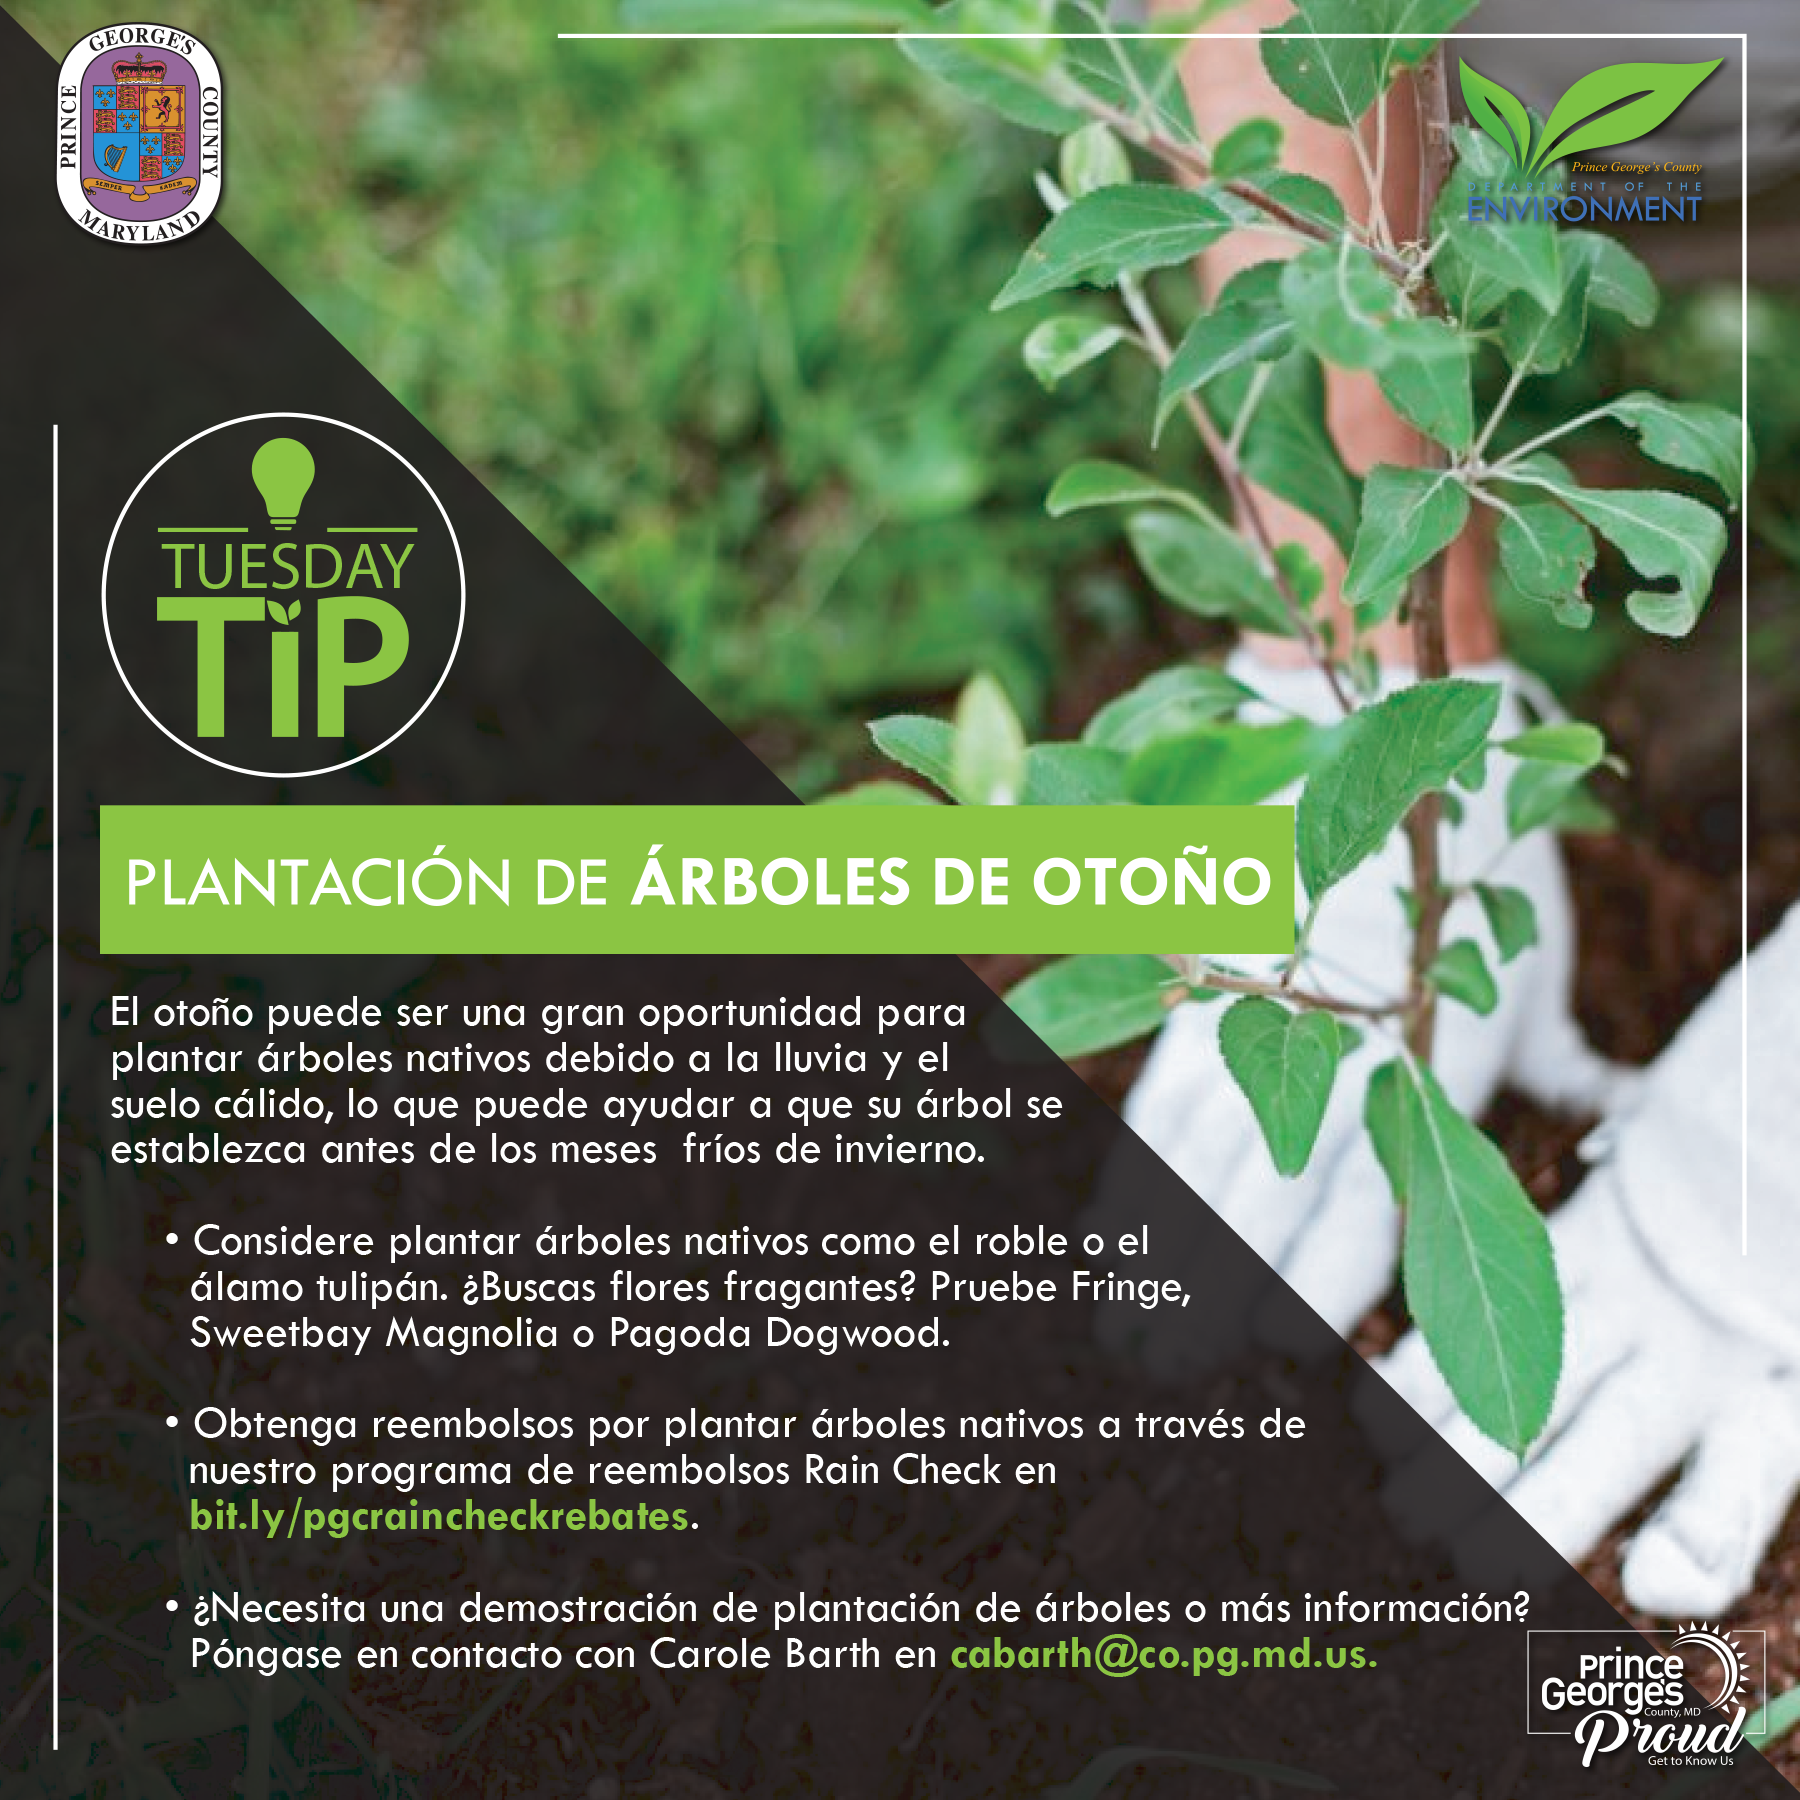 Tues tip 10.20.20 Fall tree planting sp